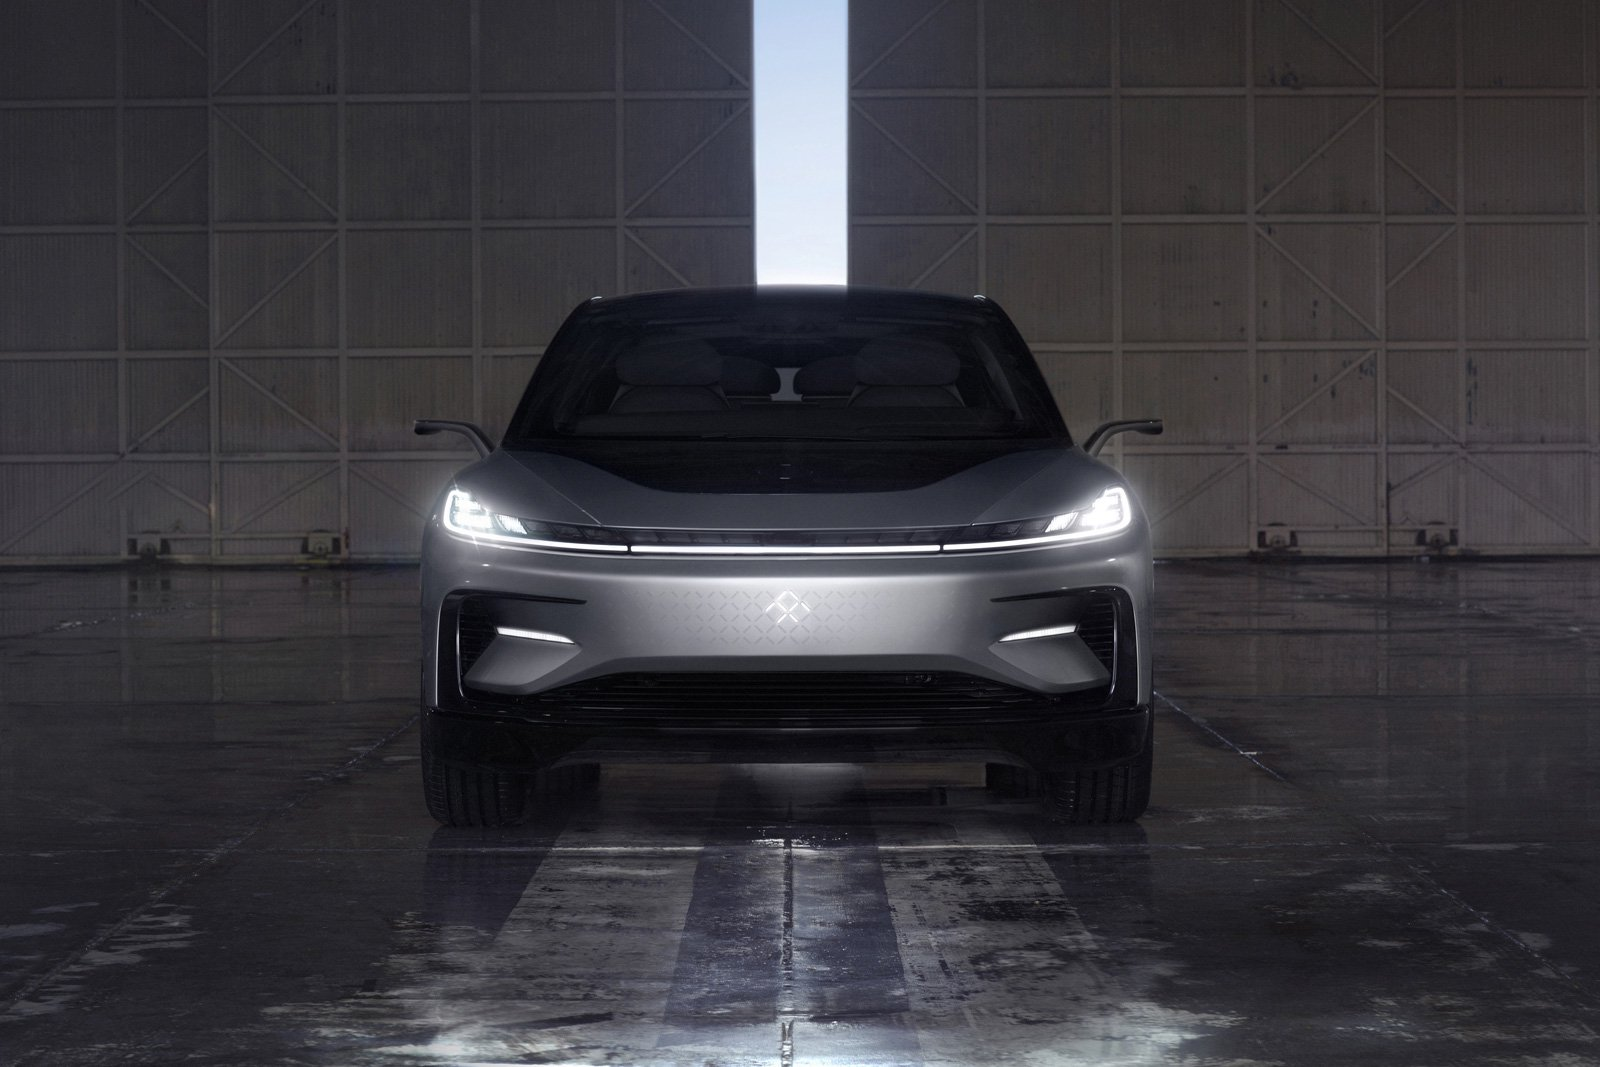 Faraday Future unveils first passenger vehicle